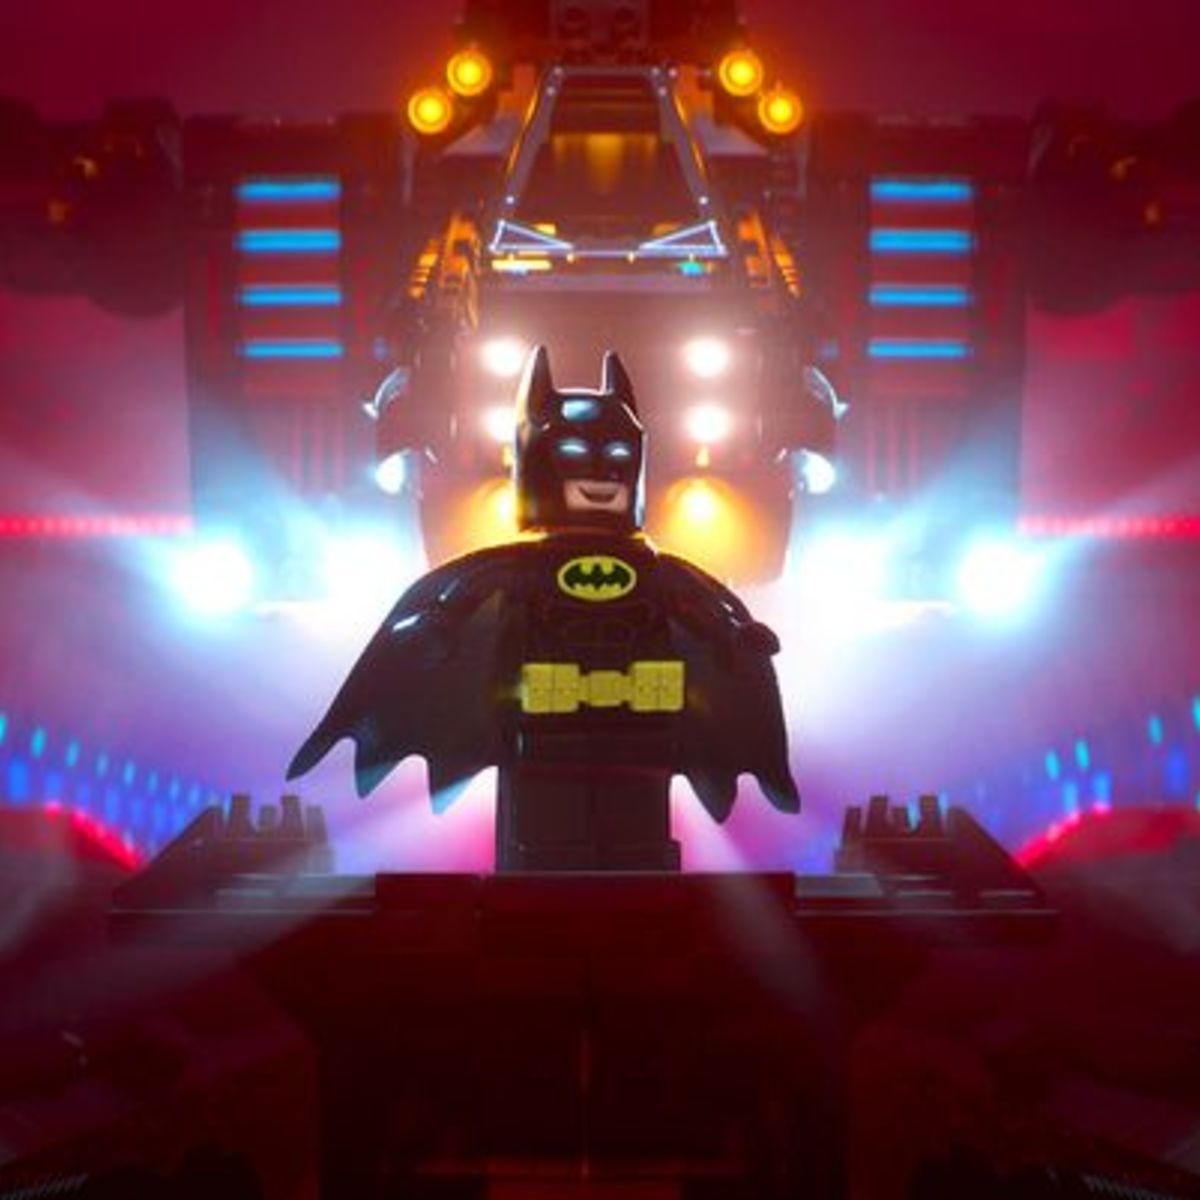 LEGO-Batman-Movie-image-4_1.JPG